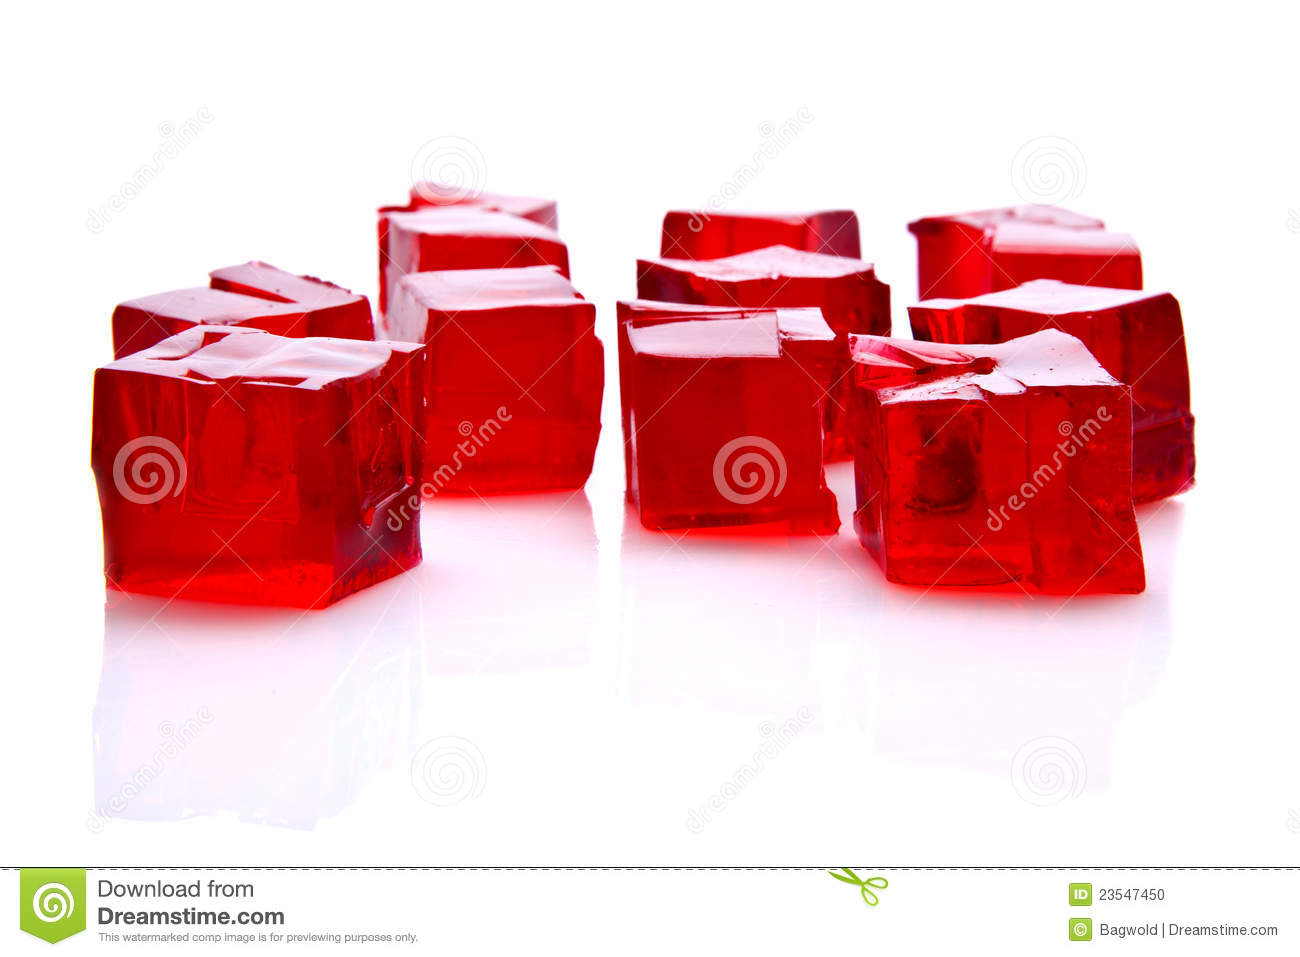 Download Cubes of red jelly stock photo. Image of pectin, strawberry - 23547450